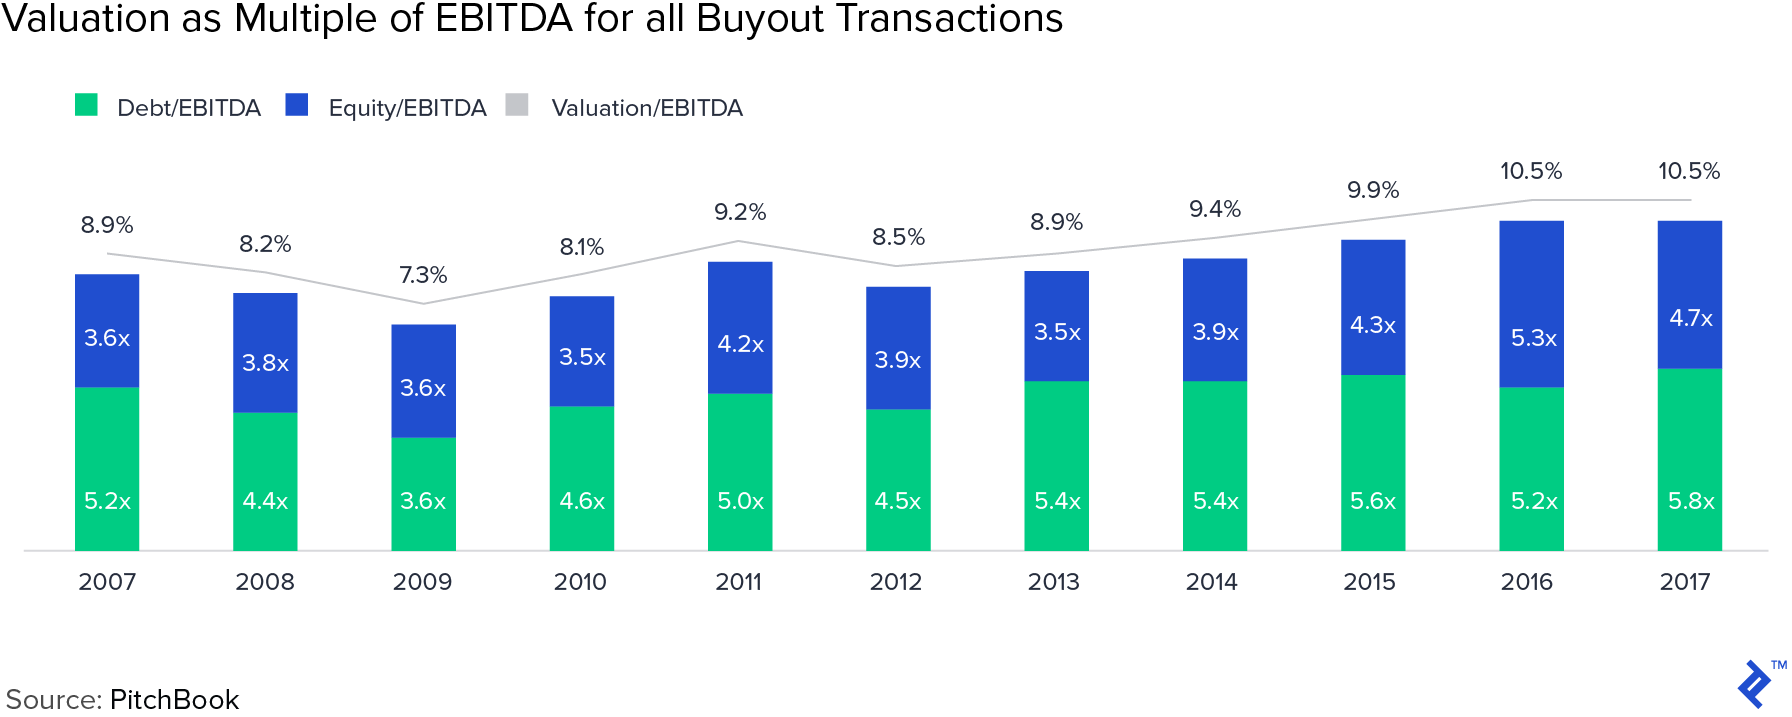 Valuation as a multiple of EBITDA for all buyout transactions